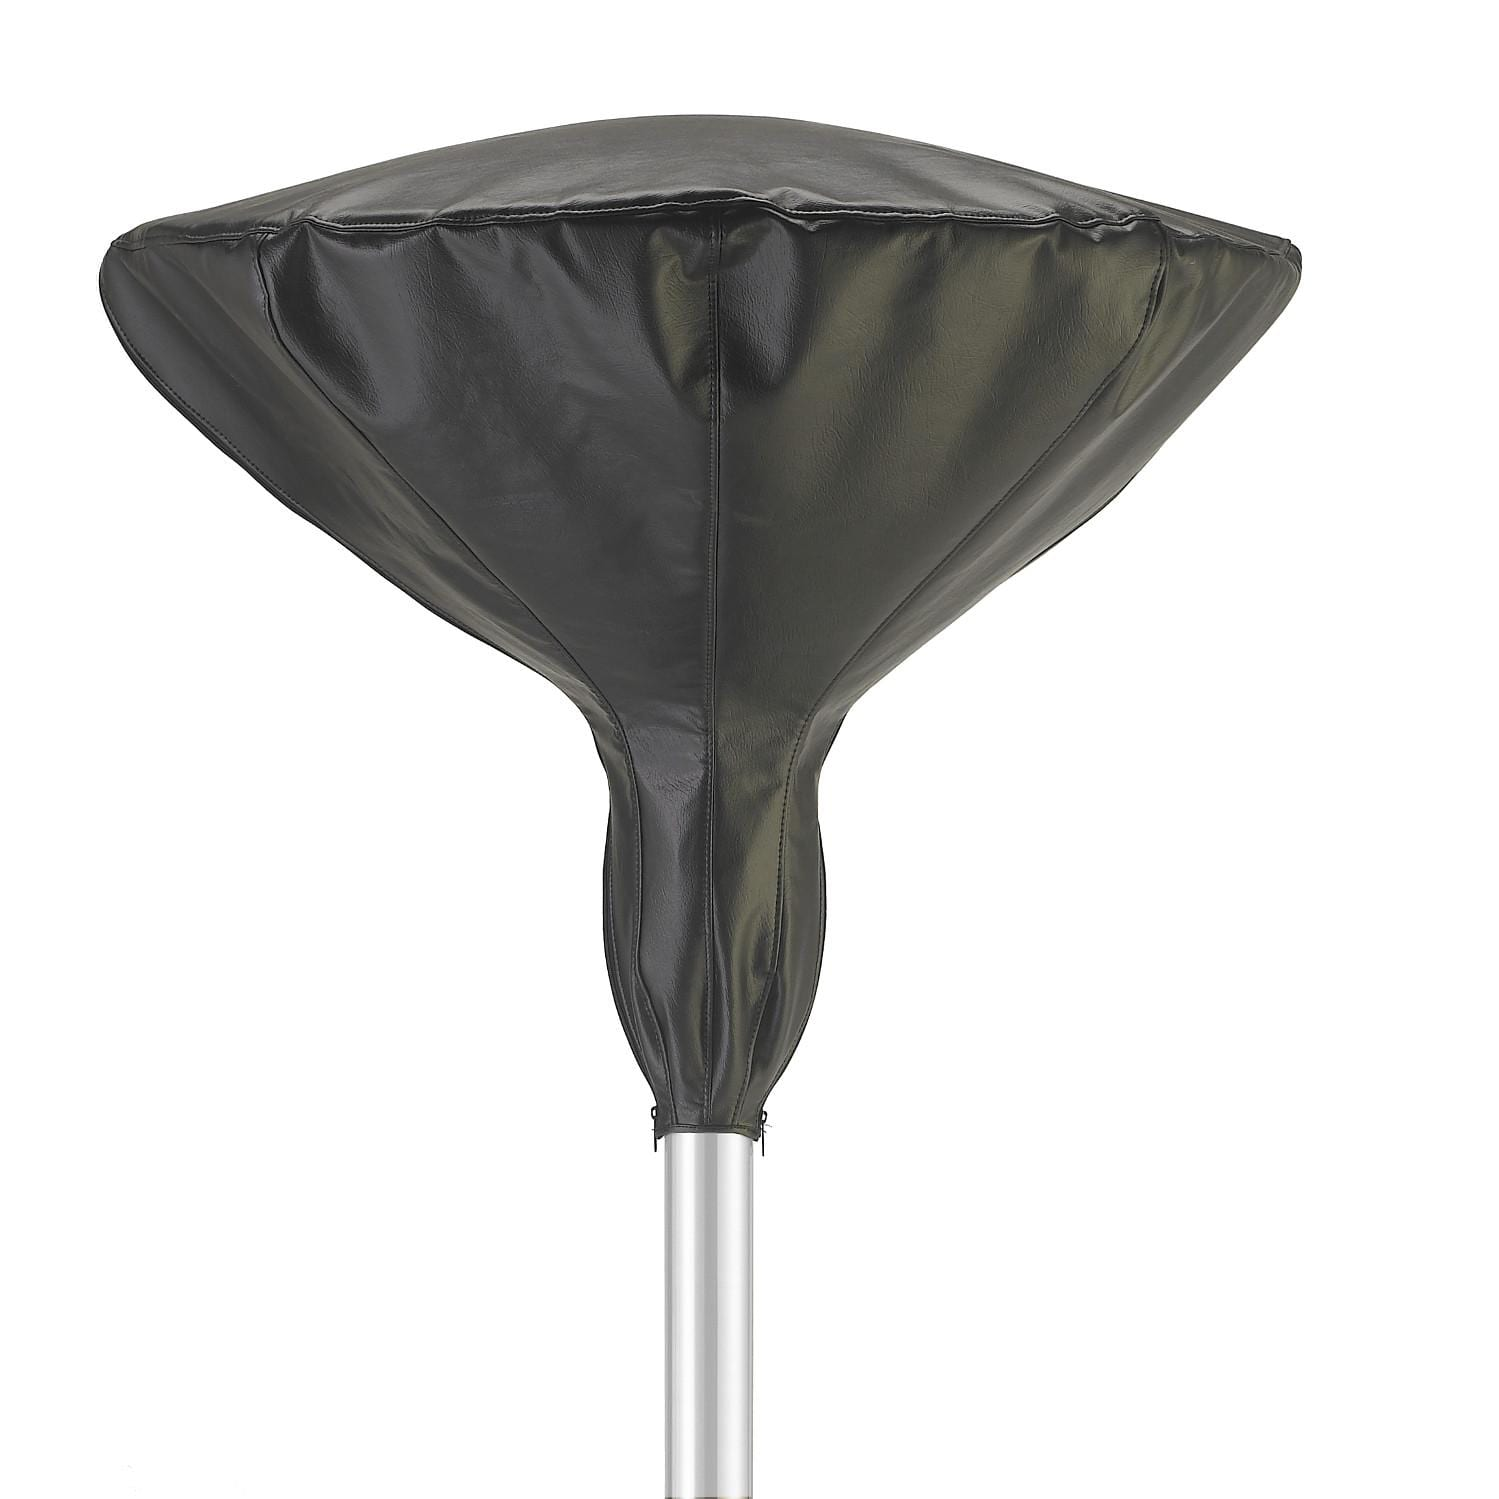 Lynx Patio Heater Dome Cover